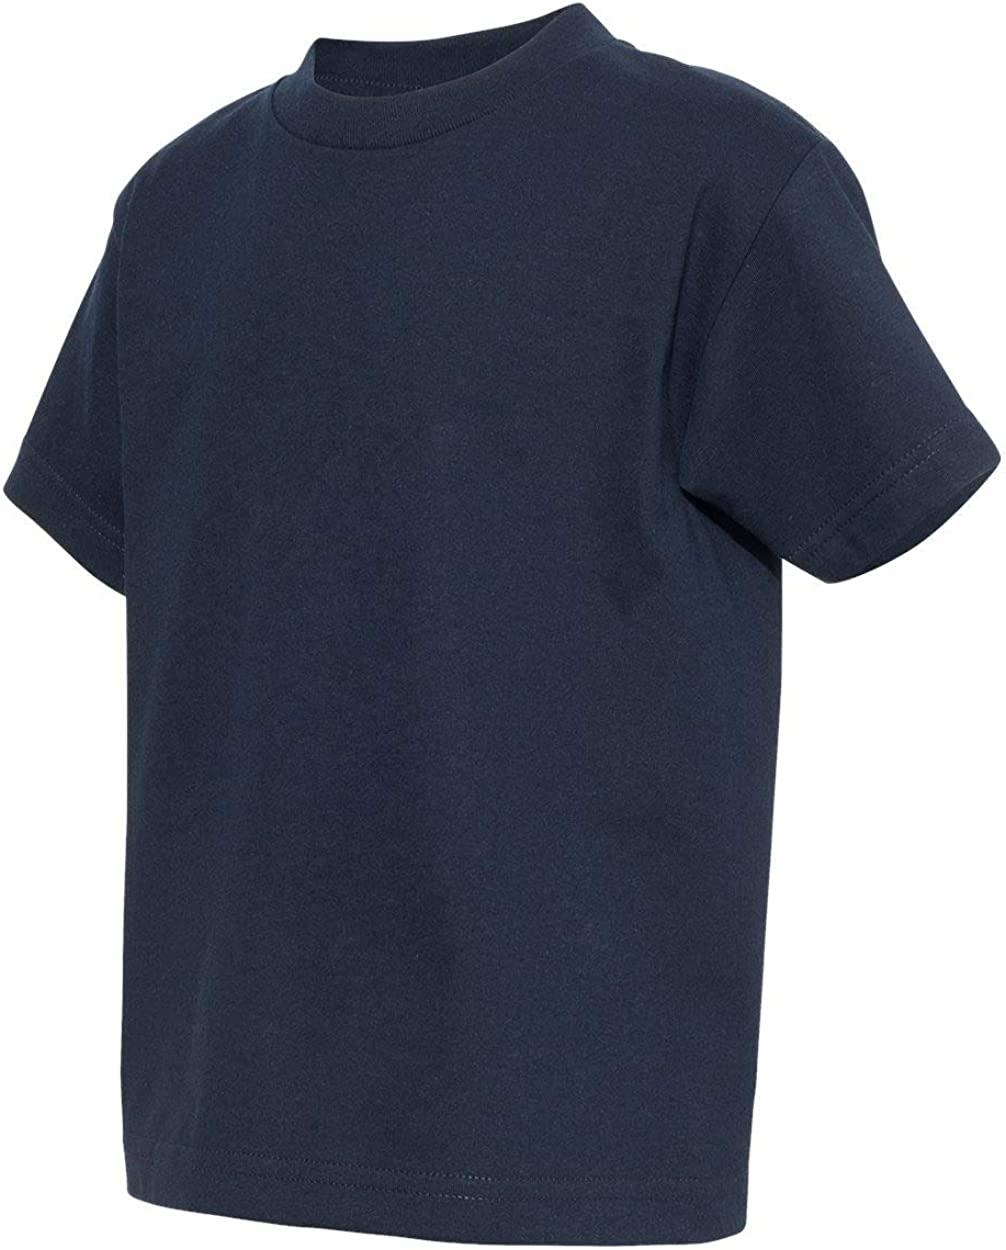 Alstyle - Juvy Classic T-Shirt - 3383-5/6 - Navy